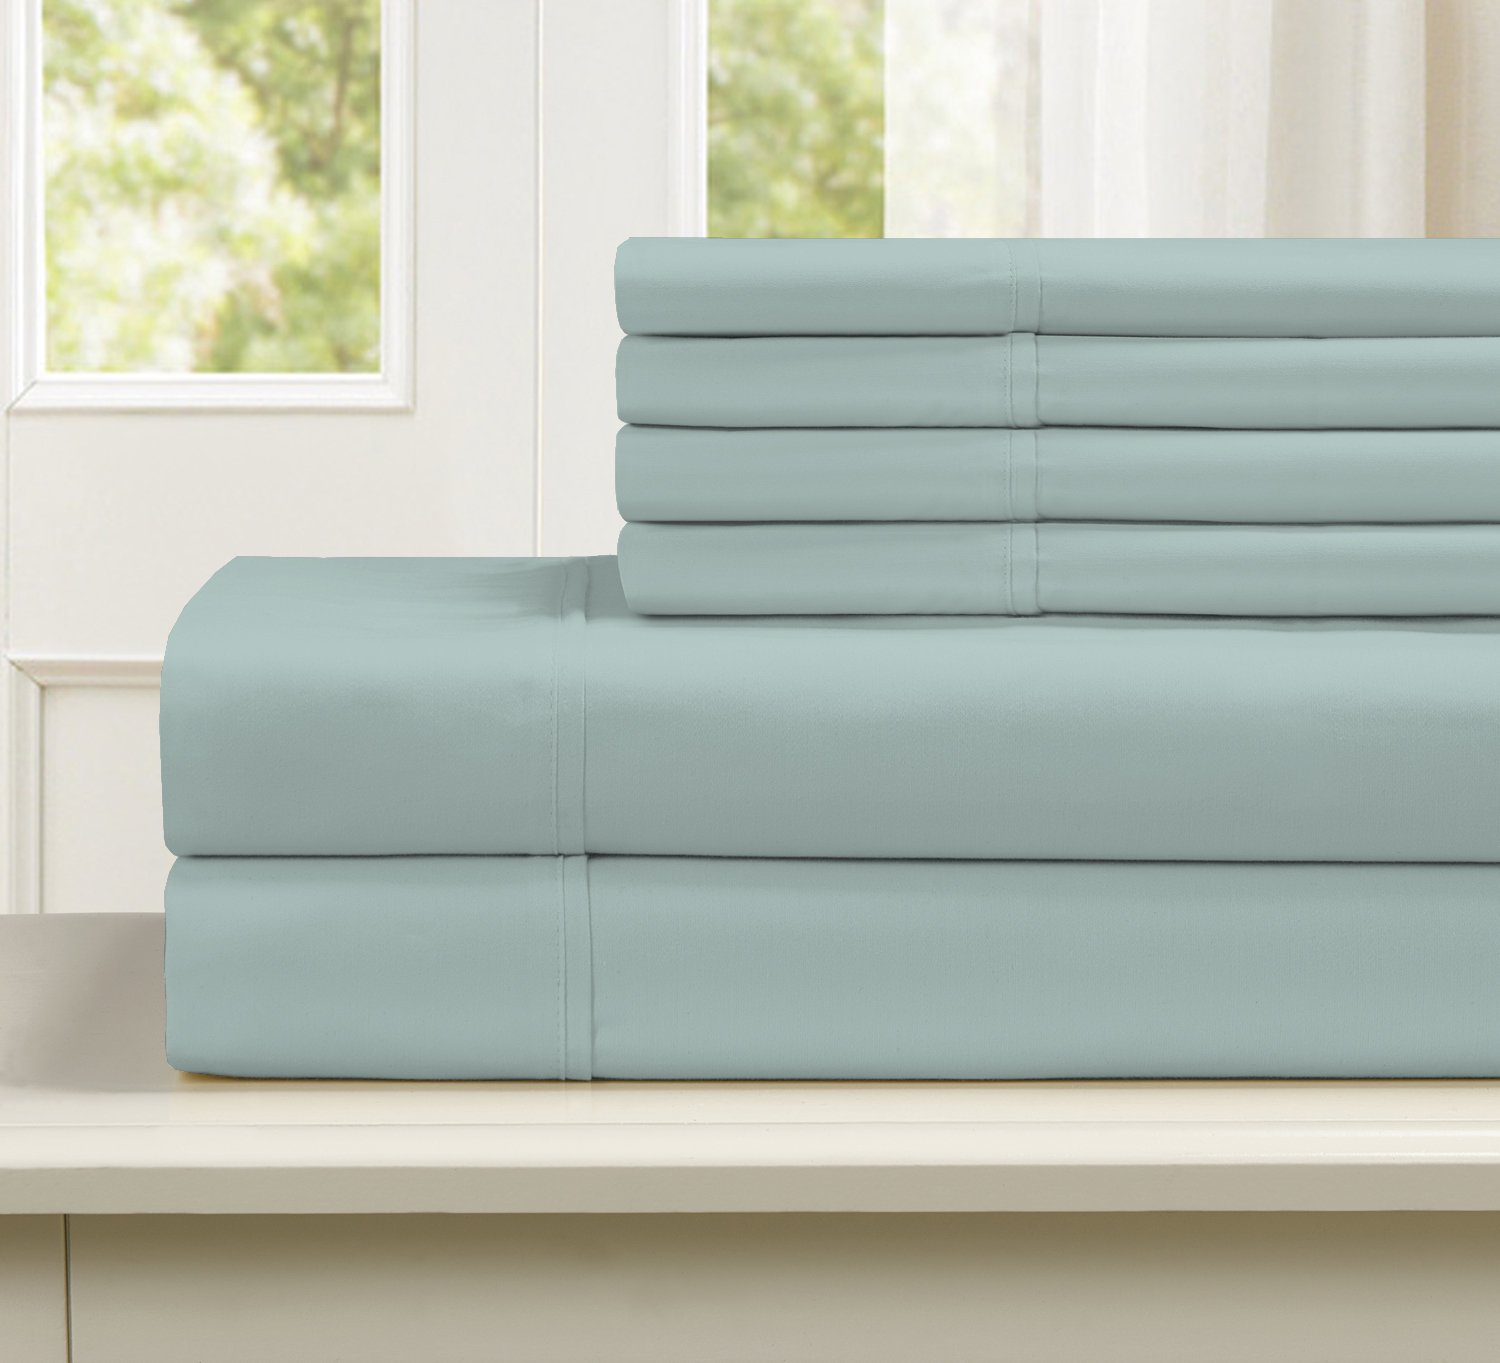 Blissful Living 800 Thread Count Cotton Rich 4-6 Piece Sheet Set - Includes Extra Pillowcase(S)! Super Soft, Hotel Quality Luxury (King, Aqua) - SOFT, COMFORTABLE AND DURABLE: Our 800 thread count sheets are made with 55% Cotton and 45% Polyester, the cotton is breathable, durable and grows softer over time. We mixed in the polyester because it helps give the sheets a crisp smooth feel, giving you the best night's sleep you can imagine. Perfect gift for Mom, Dad, Grandparents, anyone in the family, friends, co-workers on occasions like birthdays, Christmas and more. GREAT VALUE: Get the exceptional feel of cotton sheets without breaking the bank and not compromising quality at the same time. This bed sheet set is perfect for the bed of any adult, teen, child or even toddler with sizes fitting twin, full, queen and king size mattresses. COMPLETE SHEET SETS + EXTRA PILLOWCASE(S): Twin set includes 1 fitted sheet, 1 flat sheet and 2 standard pillowcases. Full and Queen size includes 1 fitted sheet, 1 flat sheet and 4 standard Pillowcases. King Size includes 1 fitted sheet, 1 flat sheet and 4 King size pillowcases, giving your bedroom, dorm room, apartment, or any other domain you can think a consistent beautiful look and feel. - sheet-sets, bedroom-sheets-comforters, bedroom - 71sjejG6E9L -